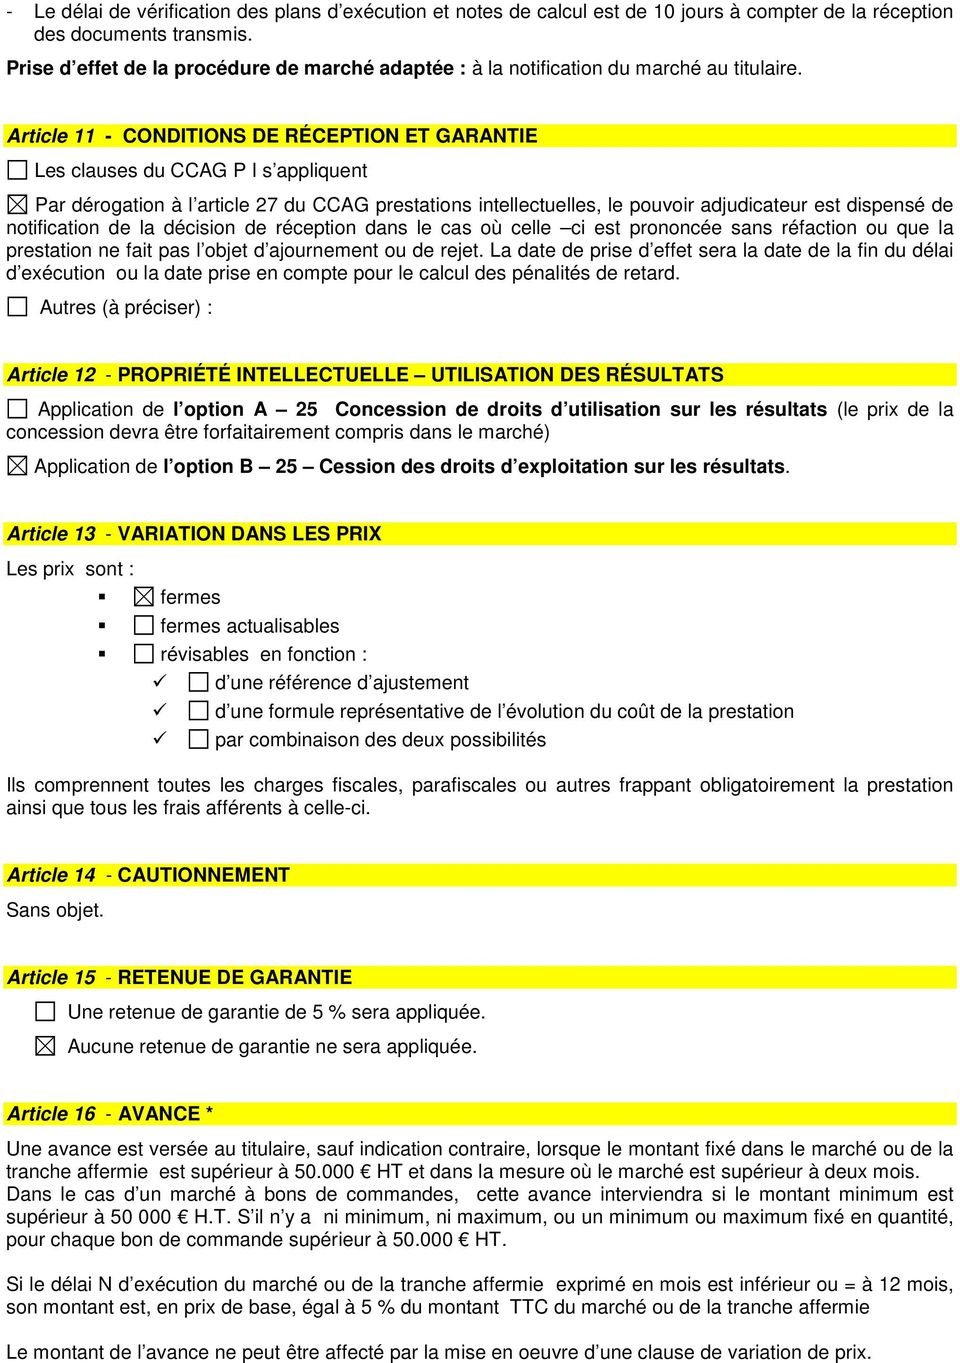 Article 11 - CONDITIONS DE RÉCEPTION ET GARANTIE Les clauses du CCAG P I s appliquent Par dérgatin à l article 27 du CCAG prestatins intellectuelles, le puvir adjudicateur est dispensé de ntificatin